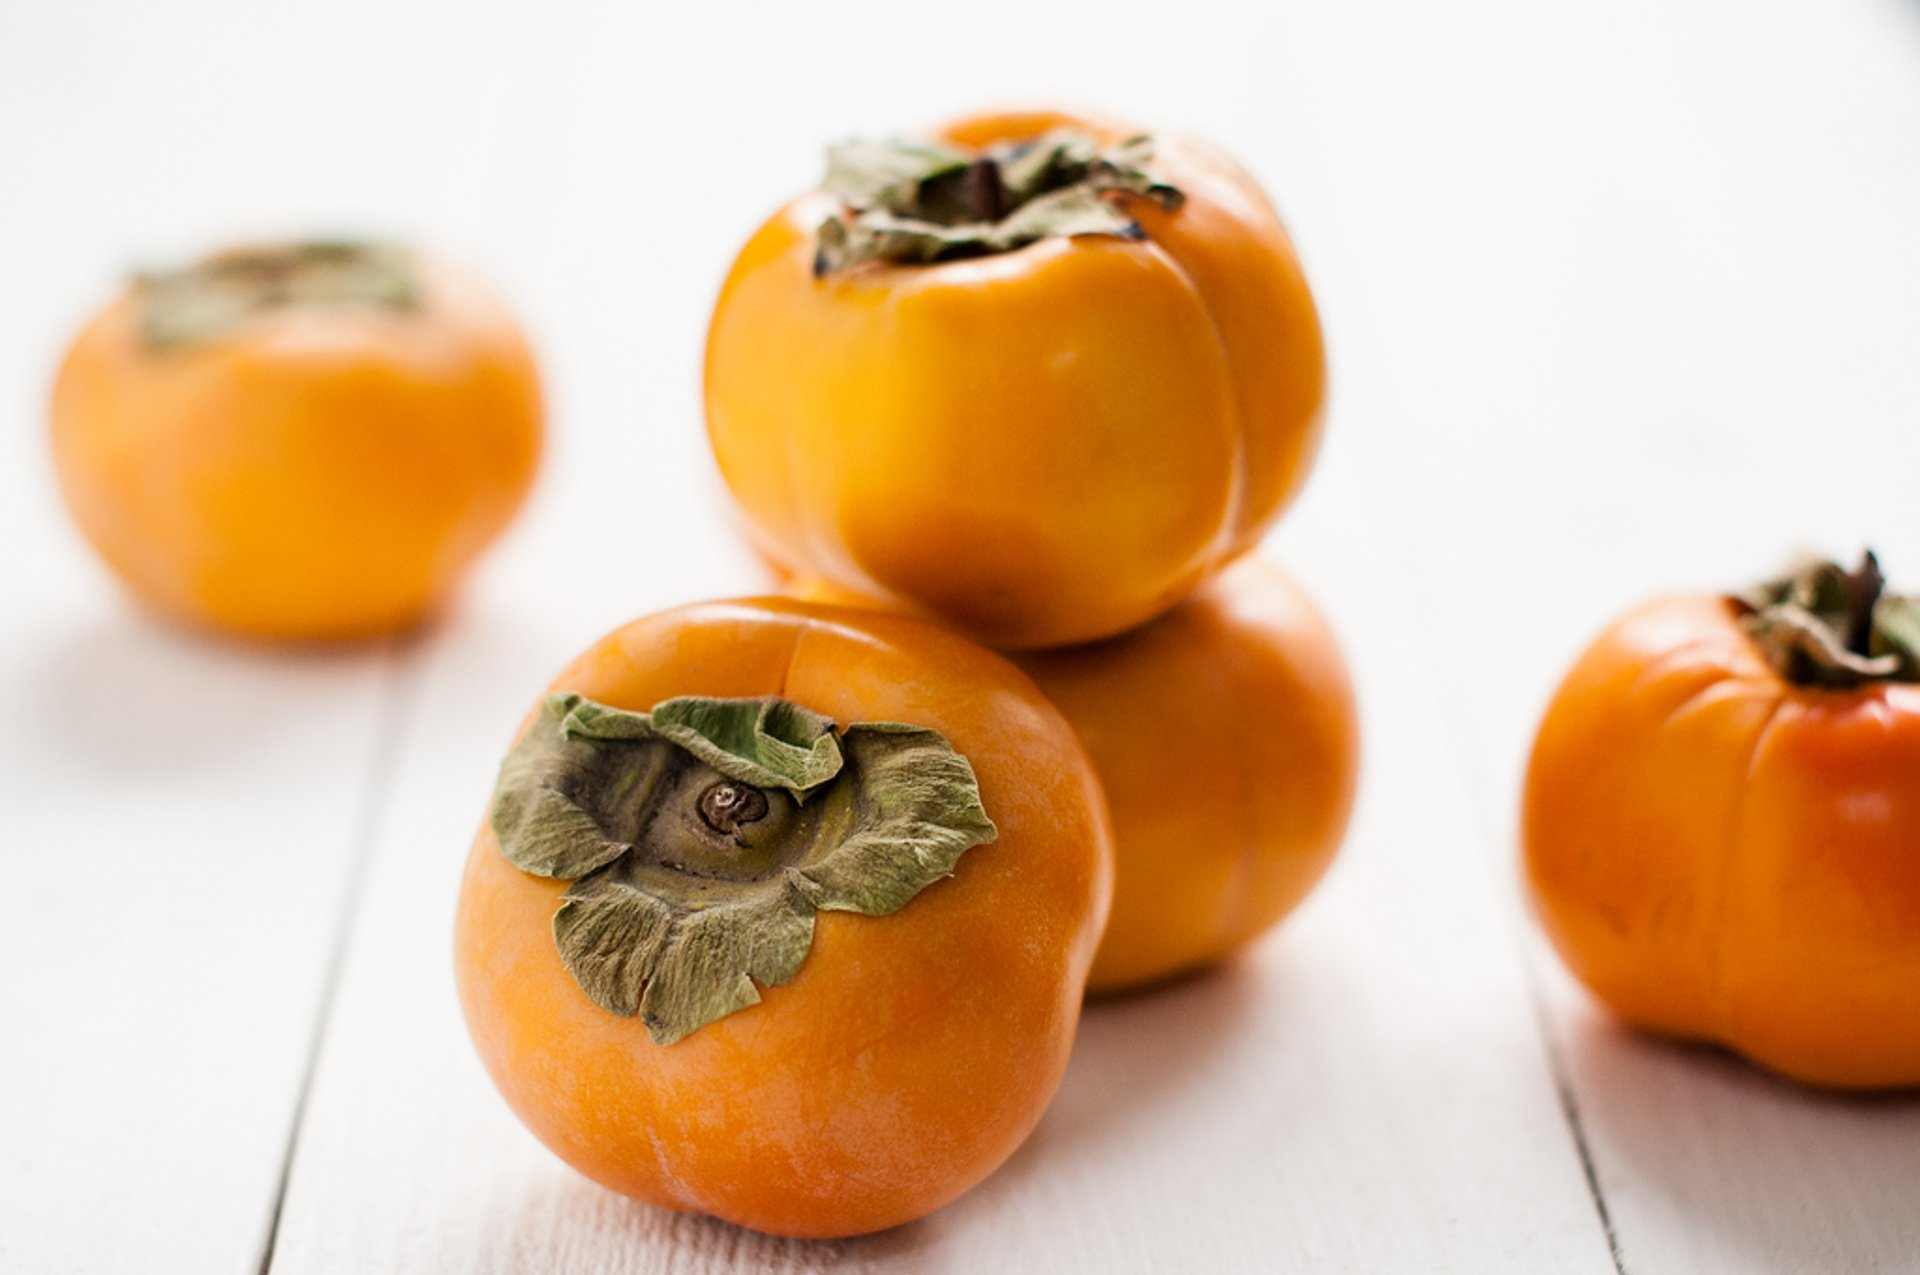 Persimmon in New Zealand 2020 - Best Time